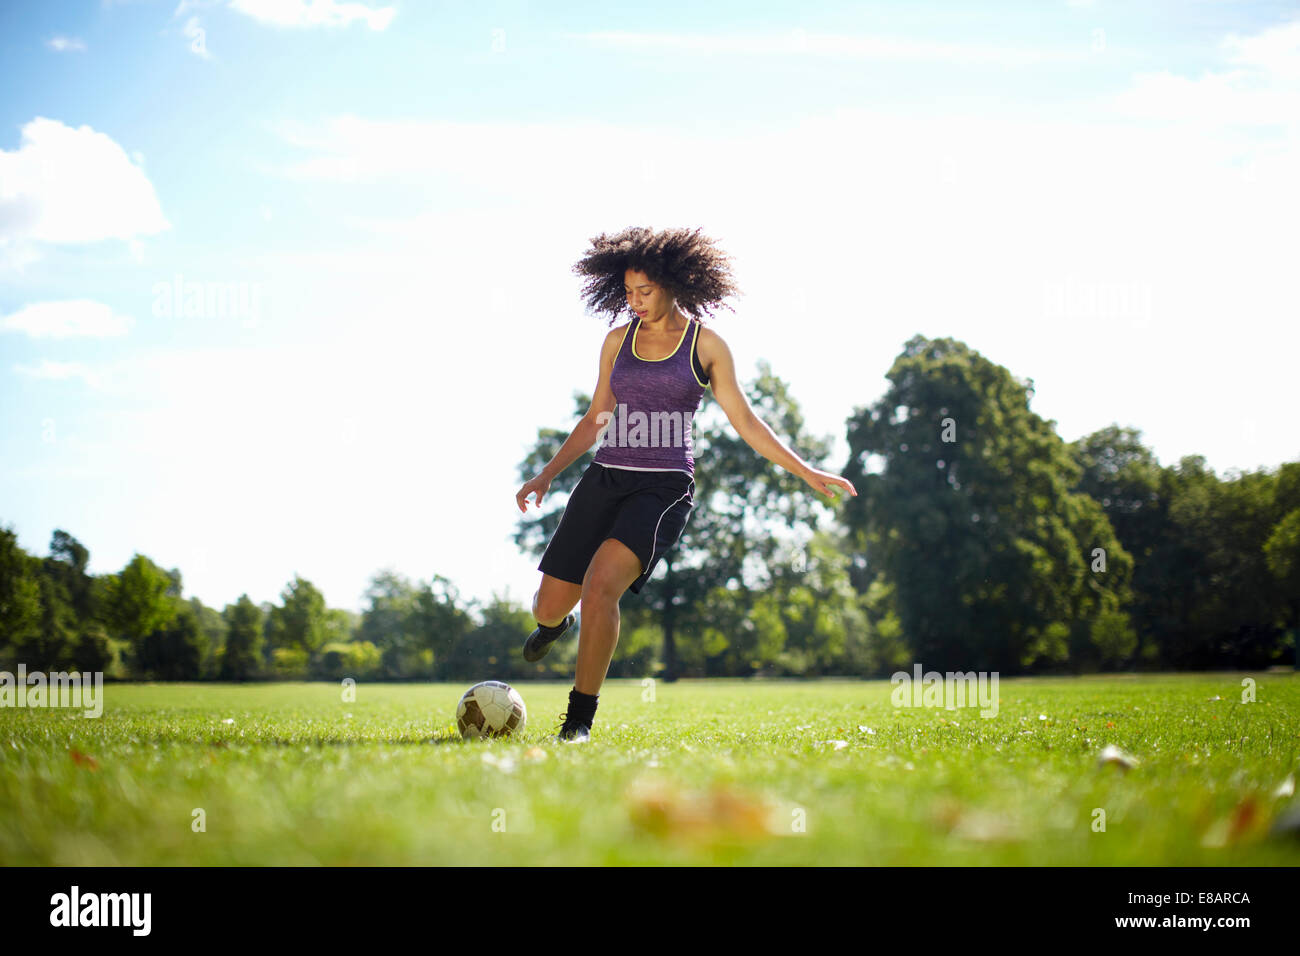 Young woman kicking soccer ball in park - Stock Image